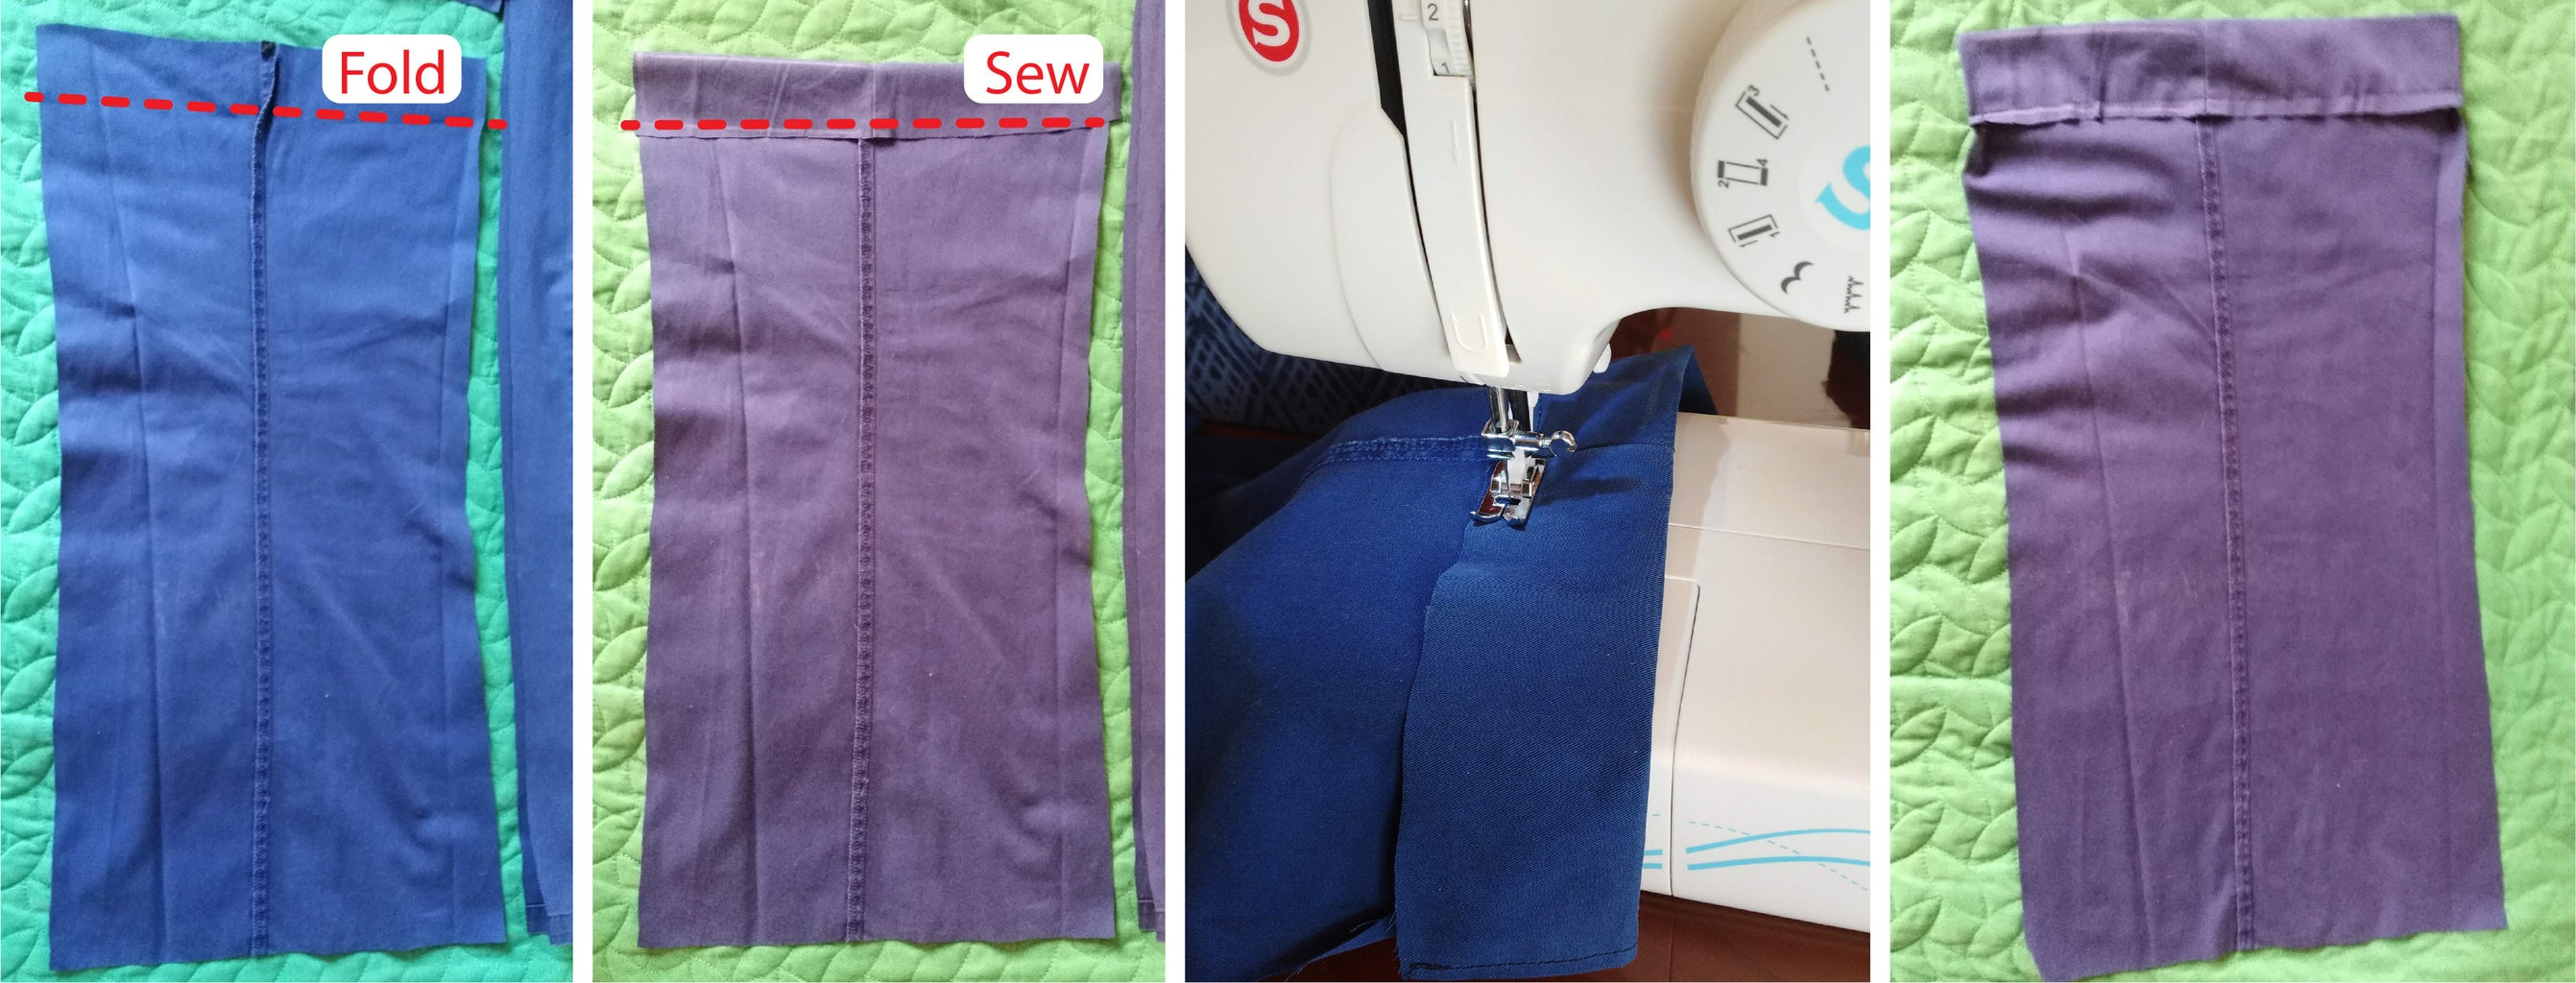 Before Sewing the D-Rings to the Bag